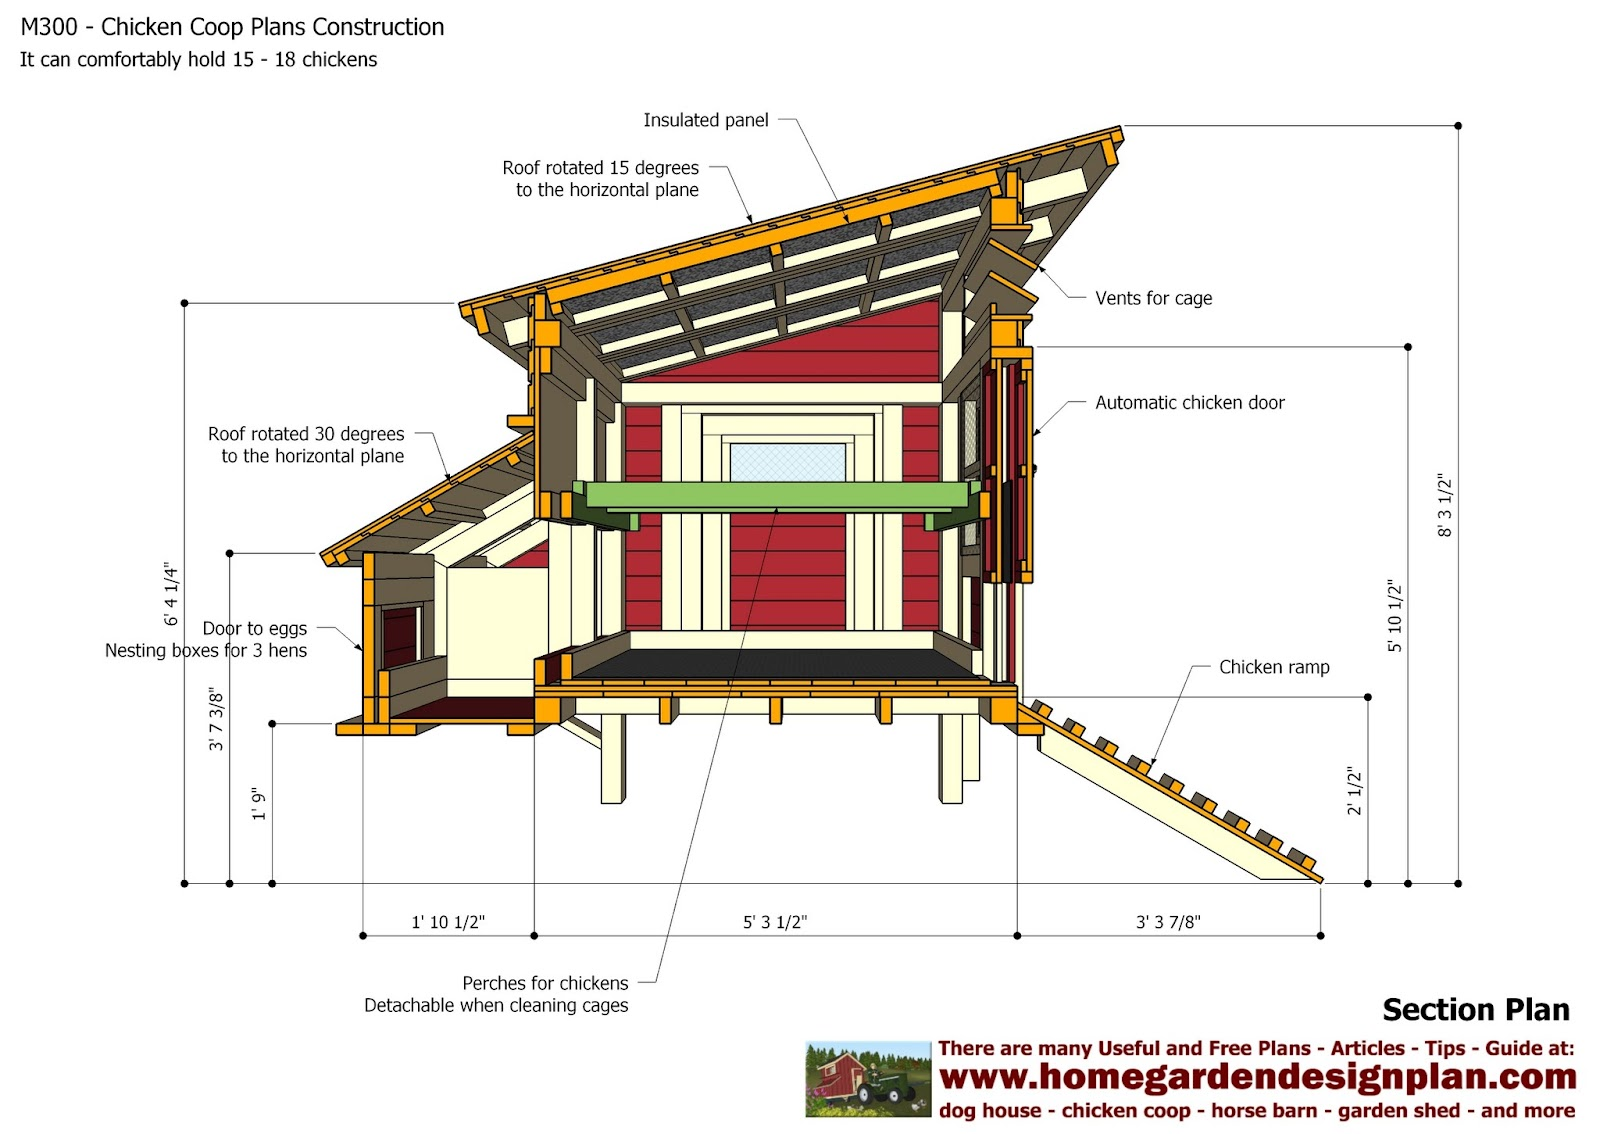 Home garden plans m300 chicken coop plans chicken for Plans chicken coop